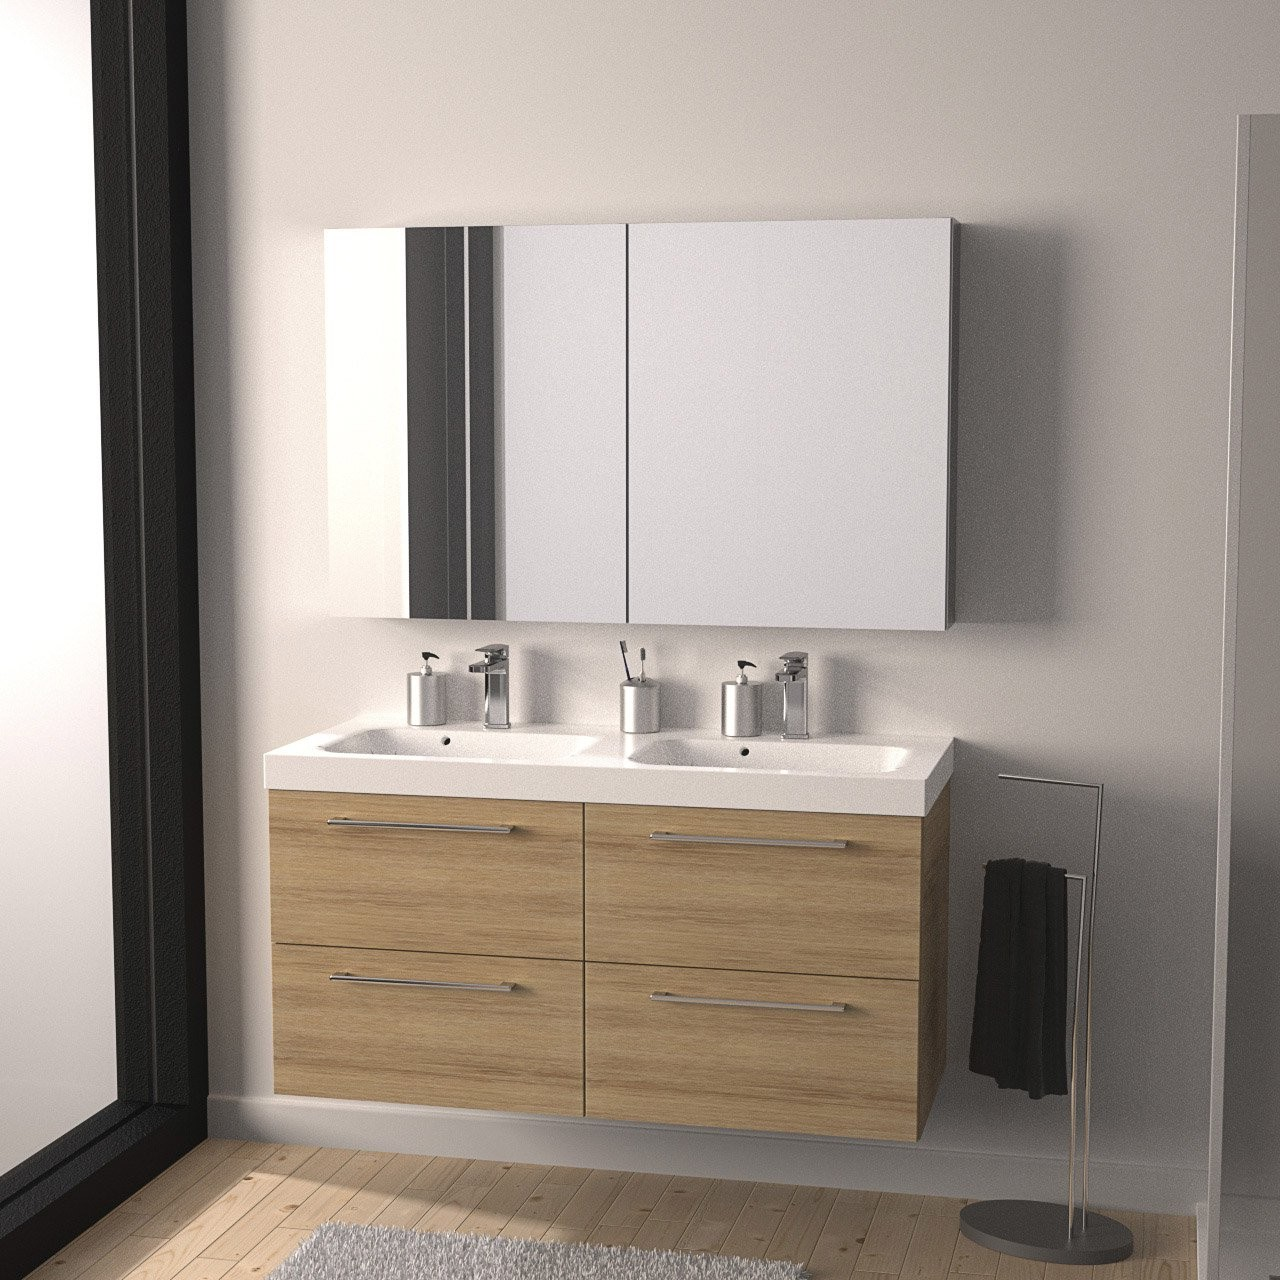 miroir pour armoire gallery of armoire de toilette. Black Bedroom Furniture Sets. Home Design Ideas